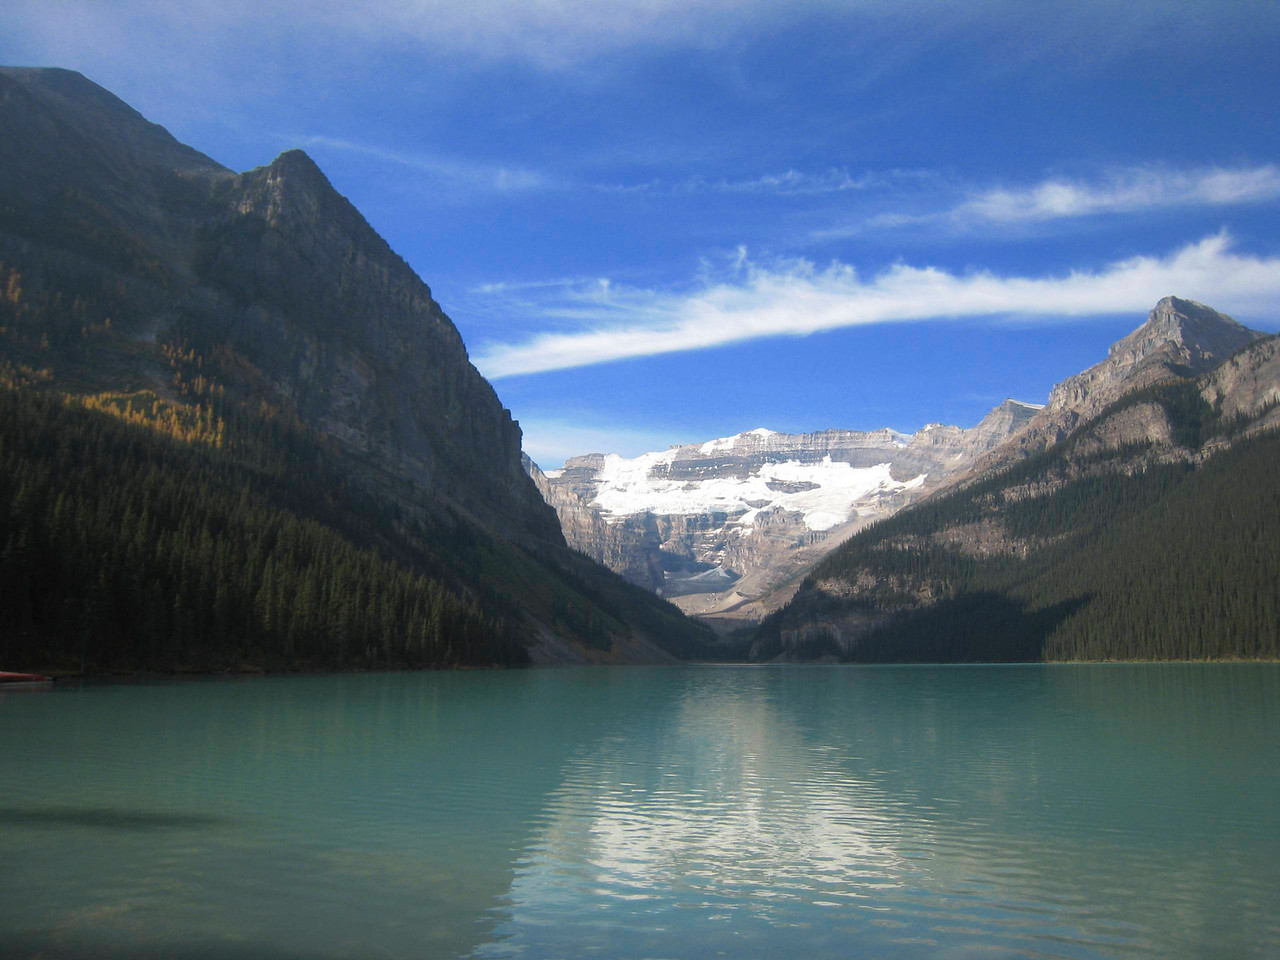 The standard view of Lake Louise.  Everyone takes this photo.